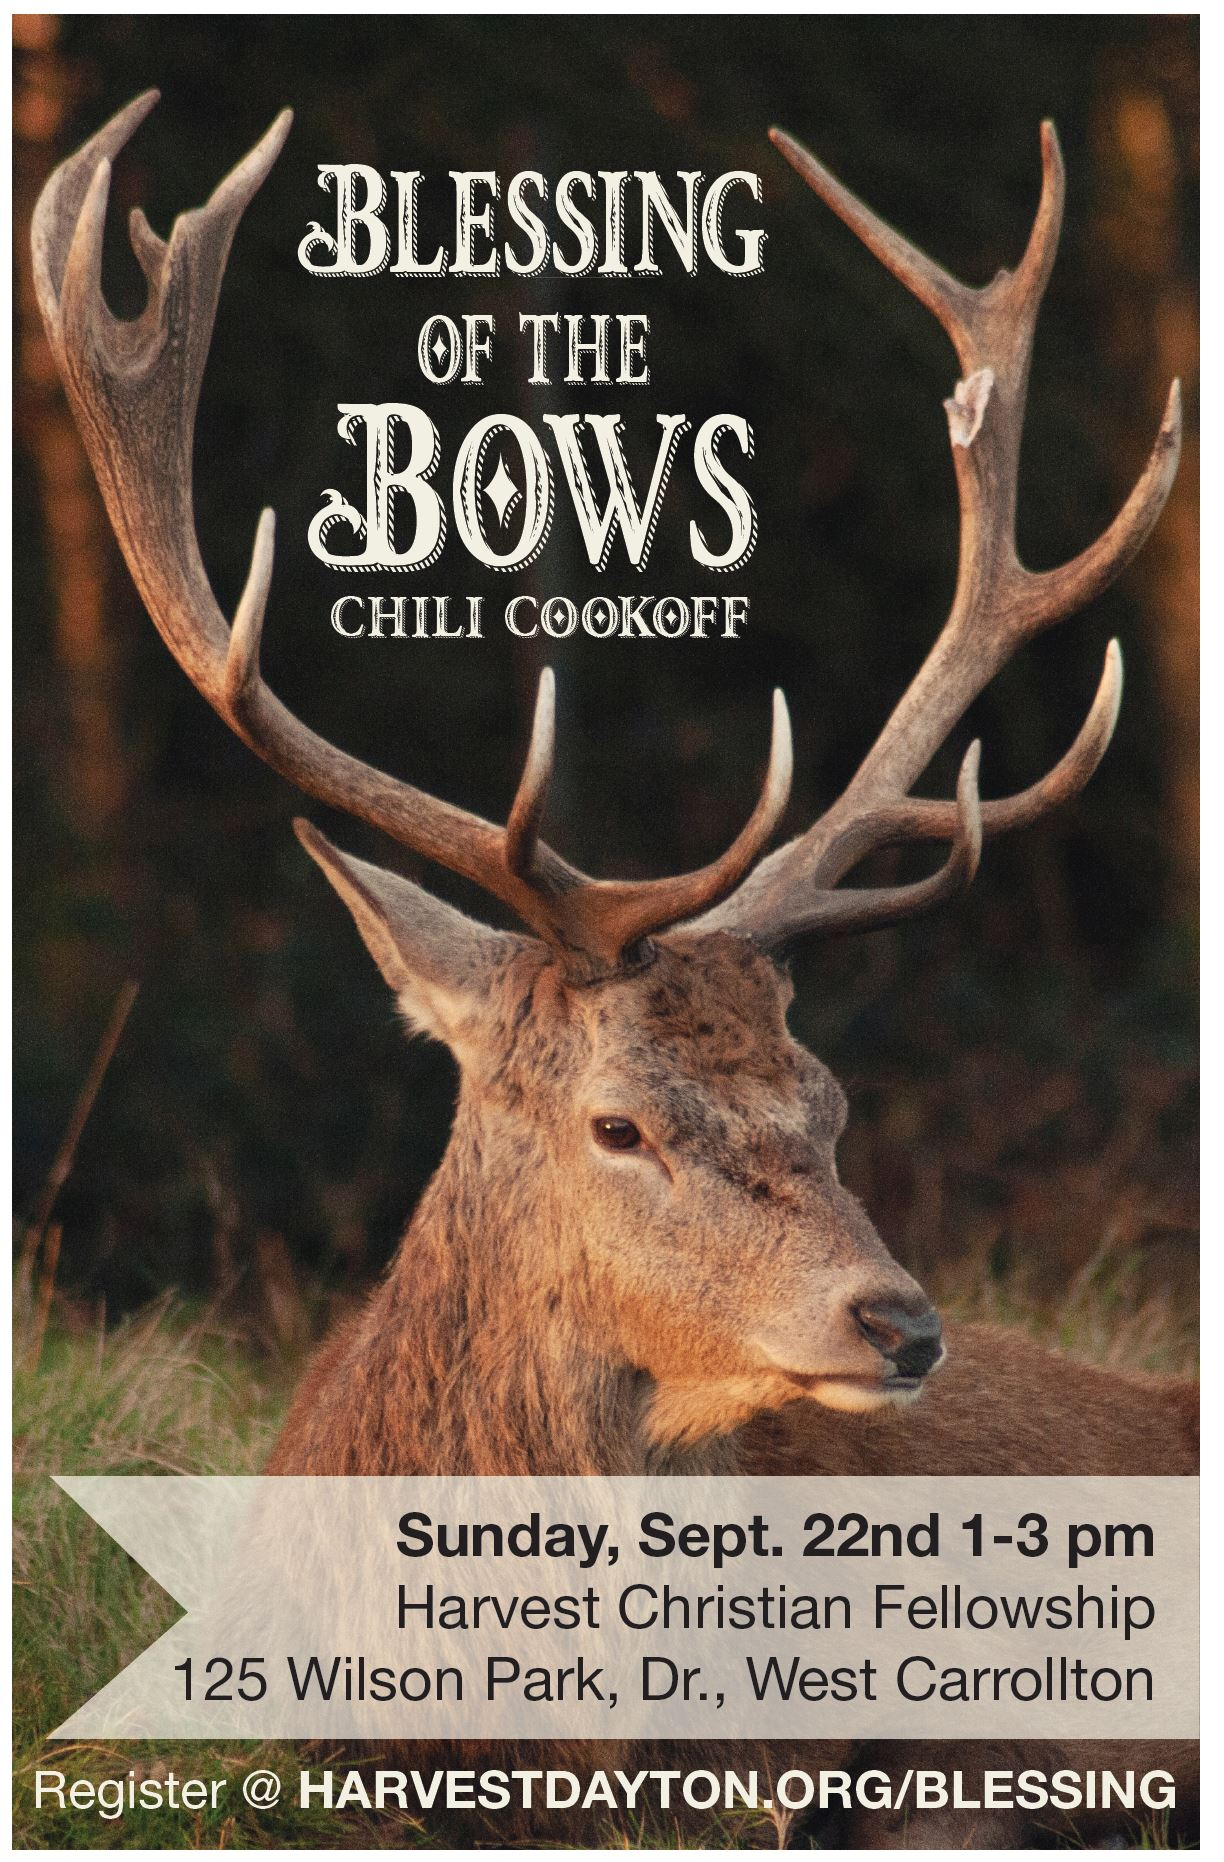 Blessing of the Bows-flyer.JPG